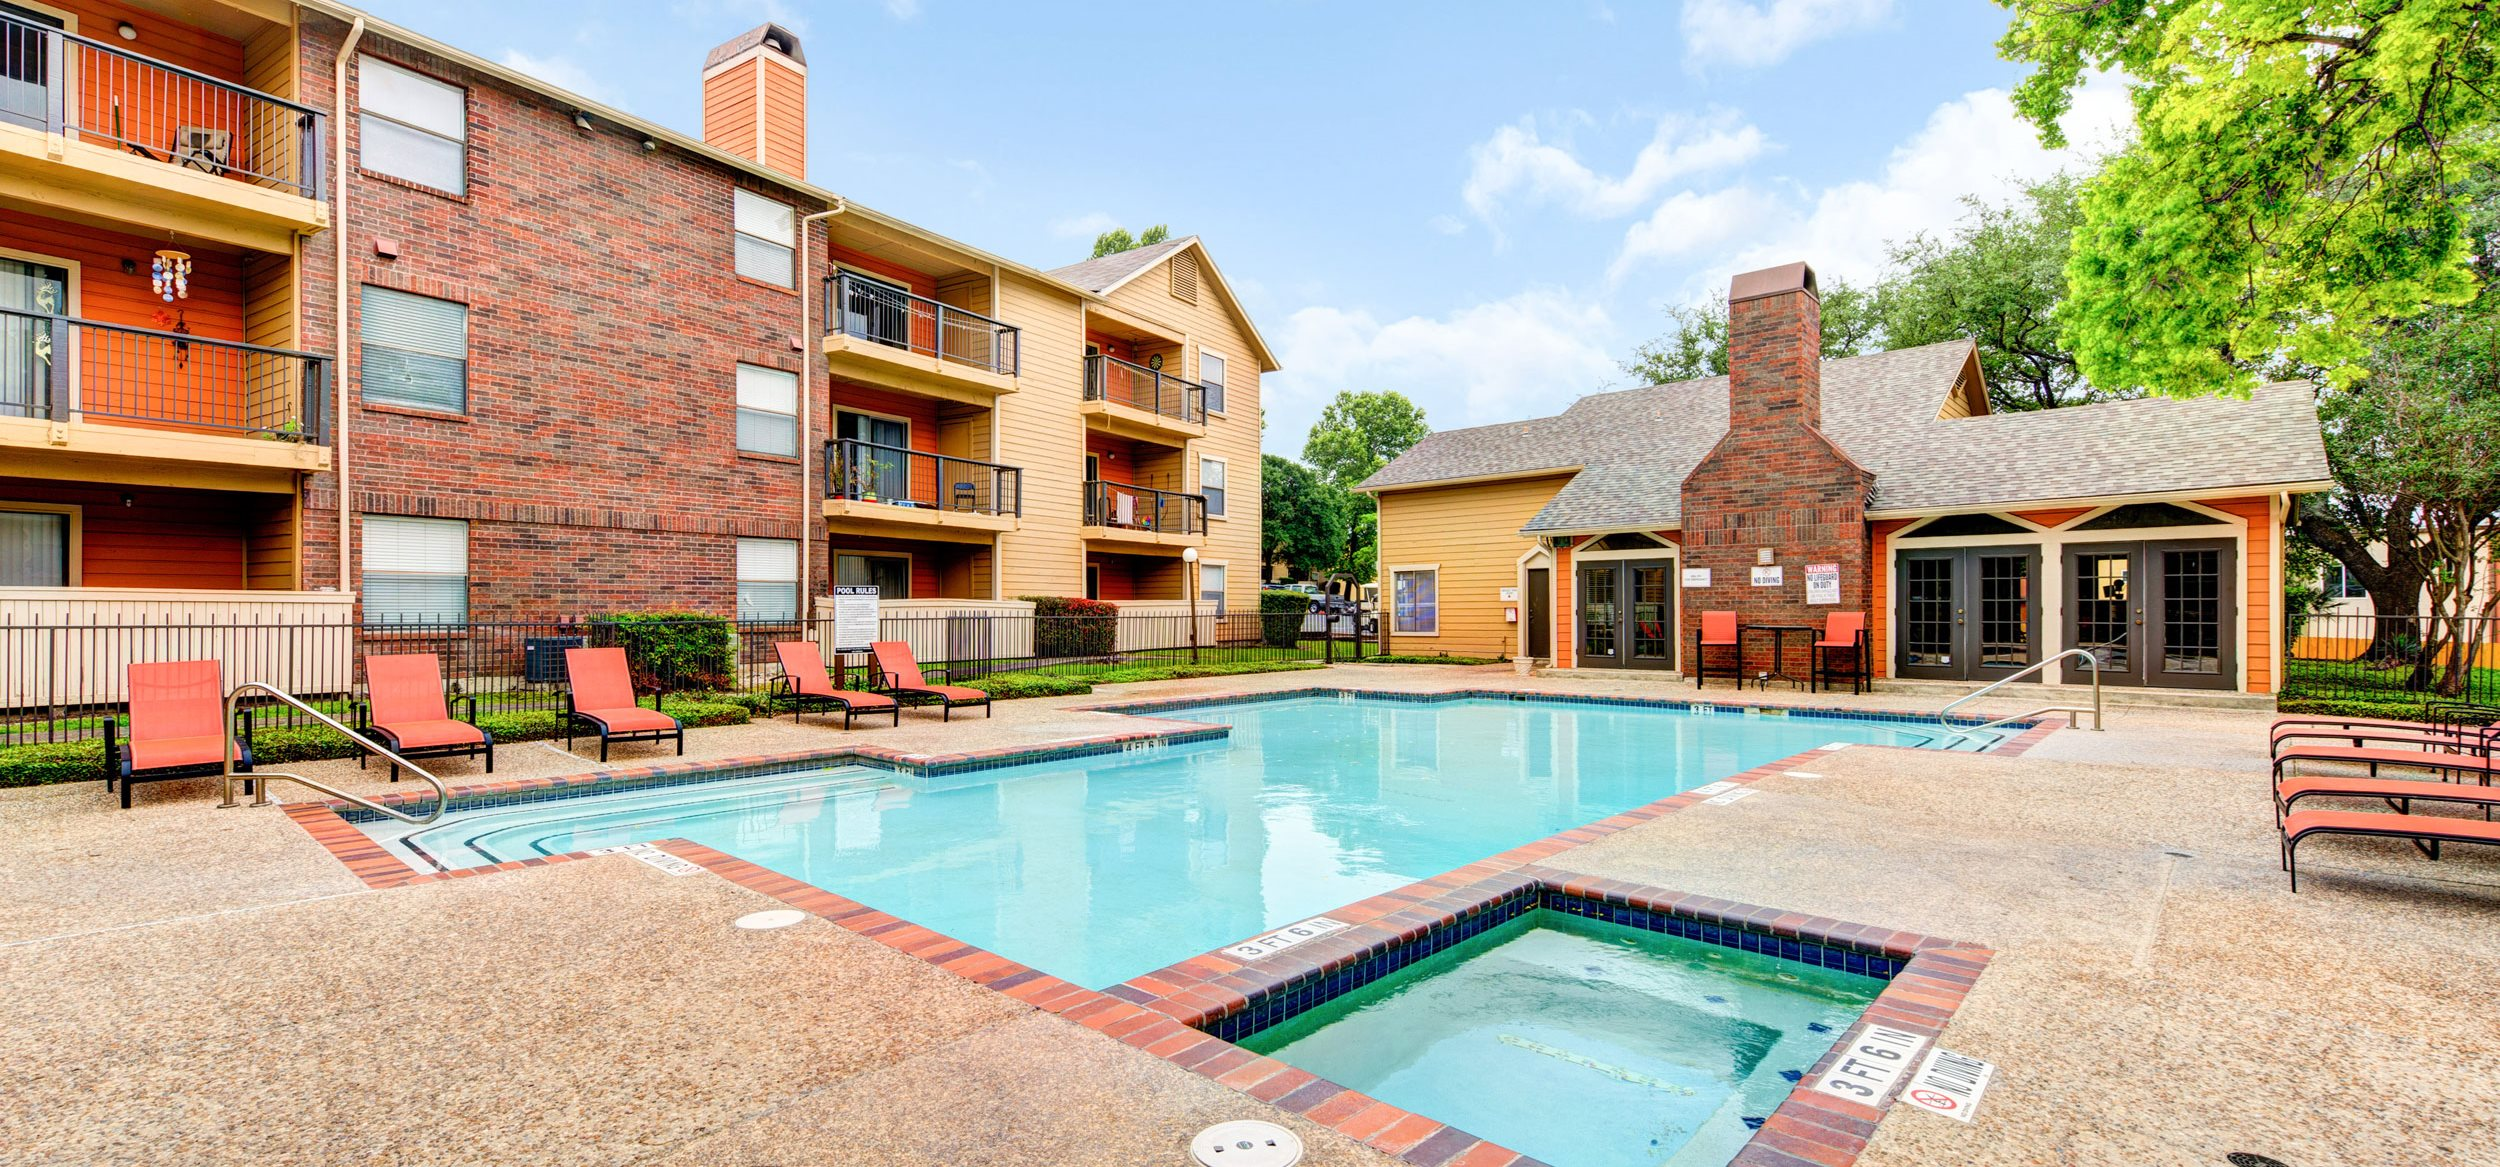 community apartments the one bedroom in area boulevard common cheap on parq san tx antonio apartment